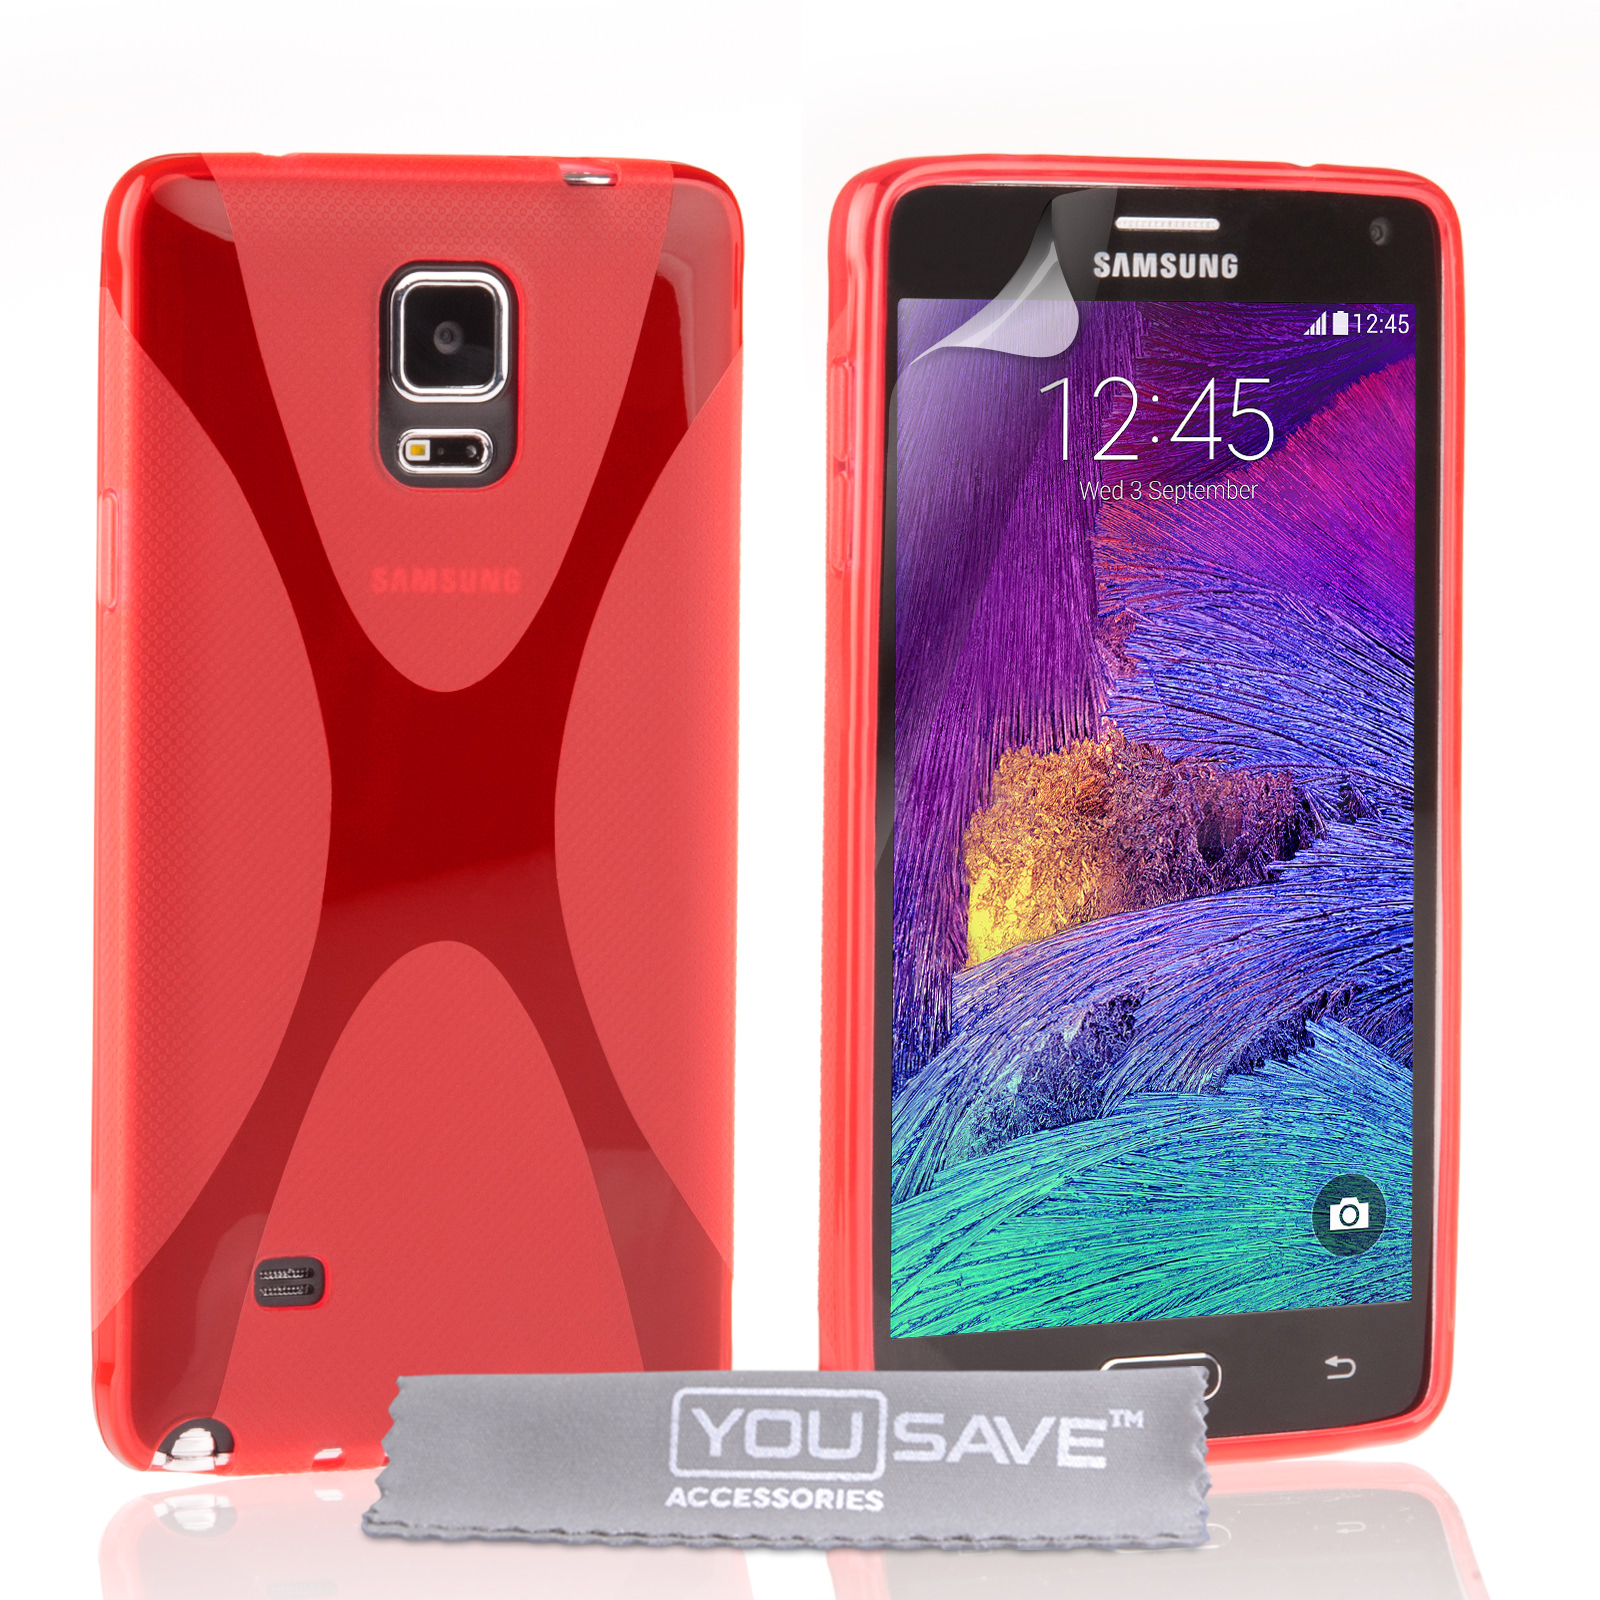 YouSave Samsung Galaxy Note 4 Silicone Gel X-Line Case - Red